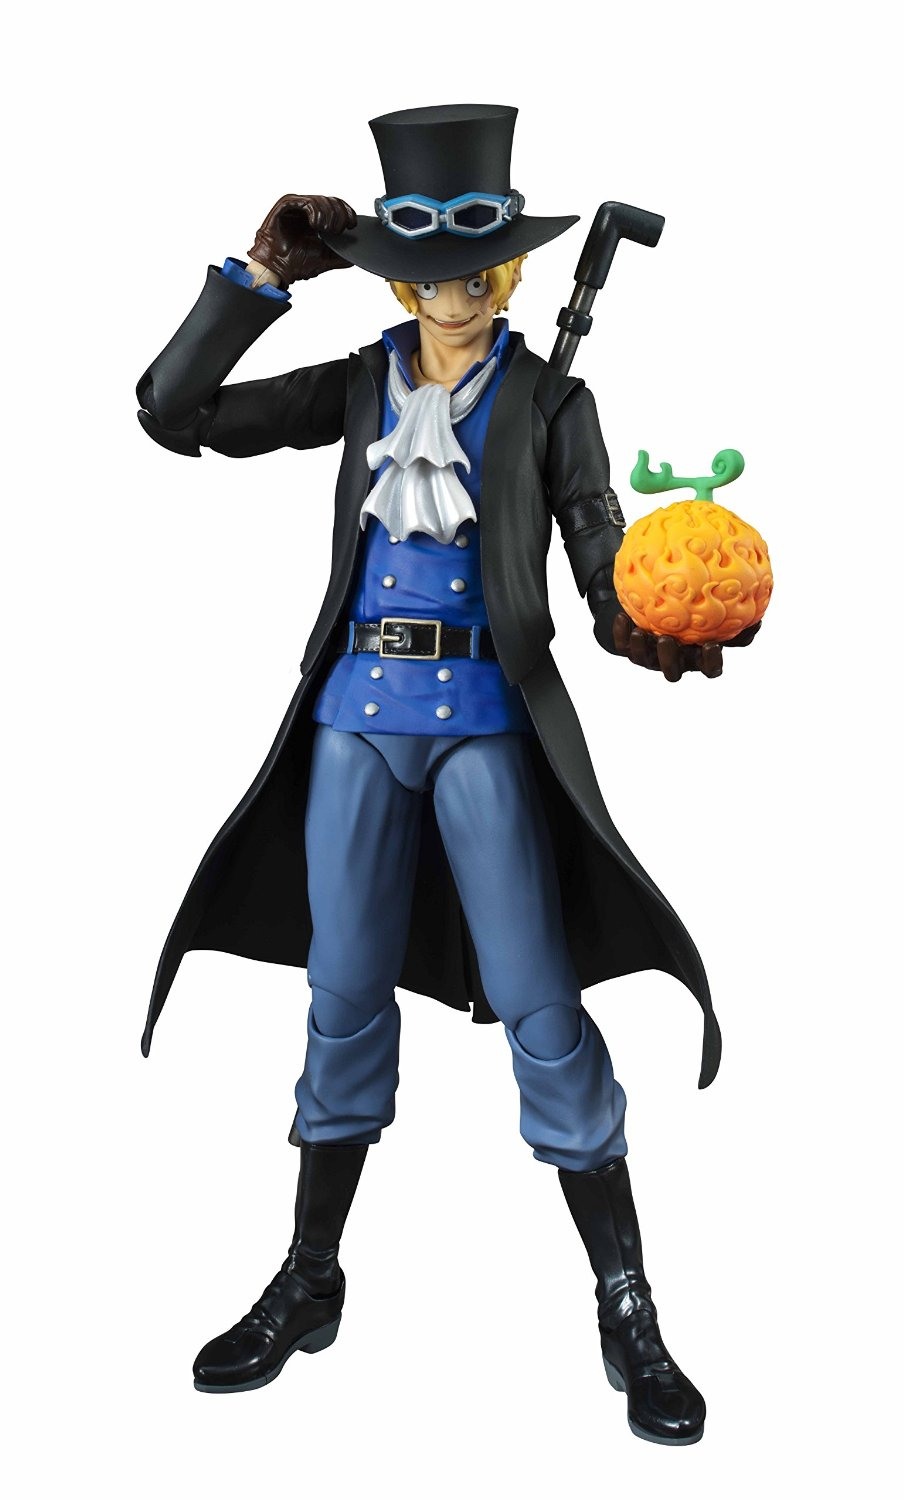 Megahouse One Piece Sabo Variable Action Hero